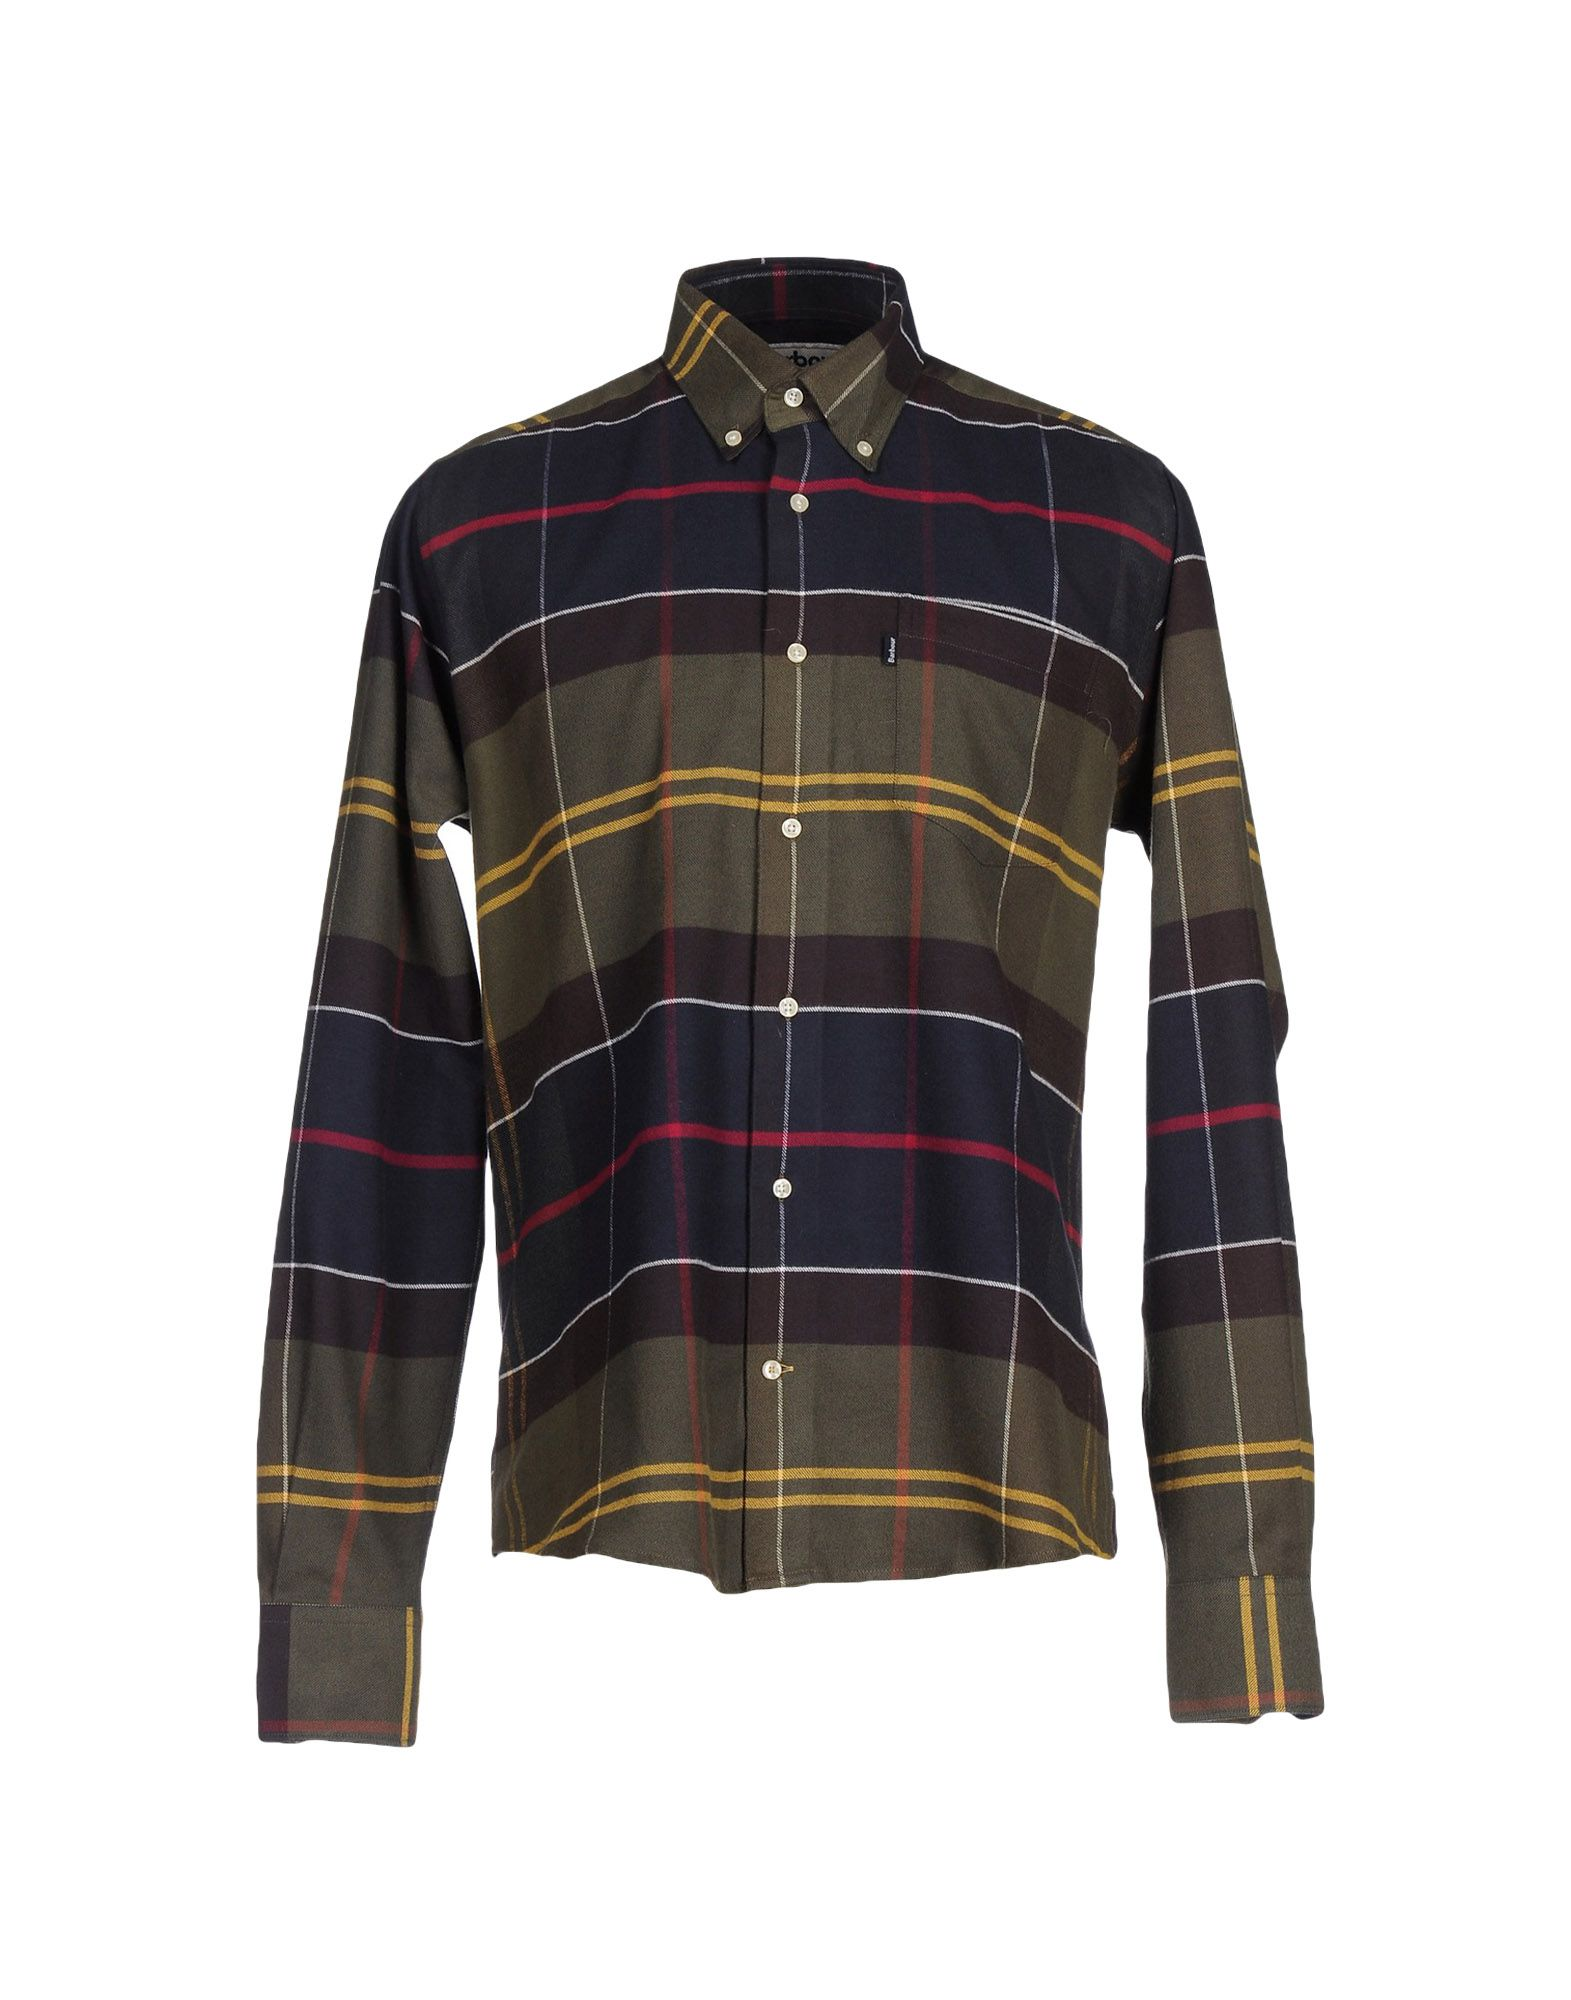 BARBOUR Pубашка barbour mml0851 gy52